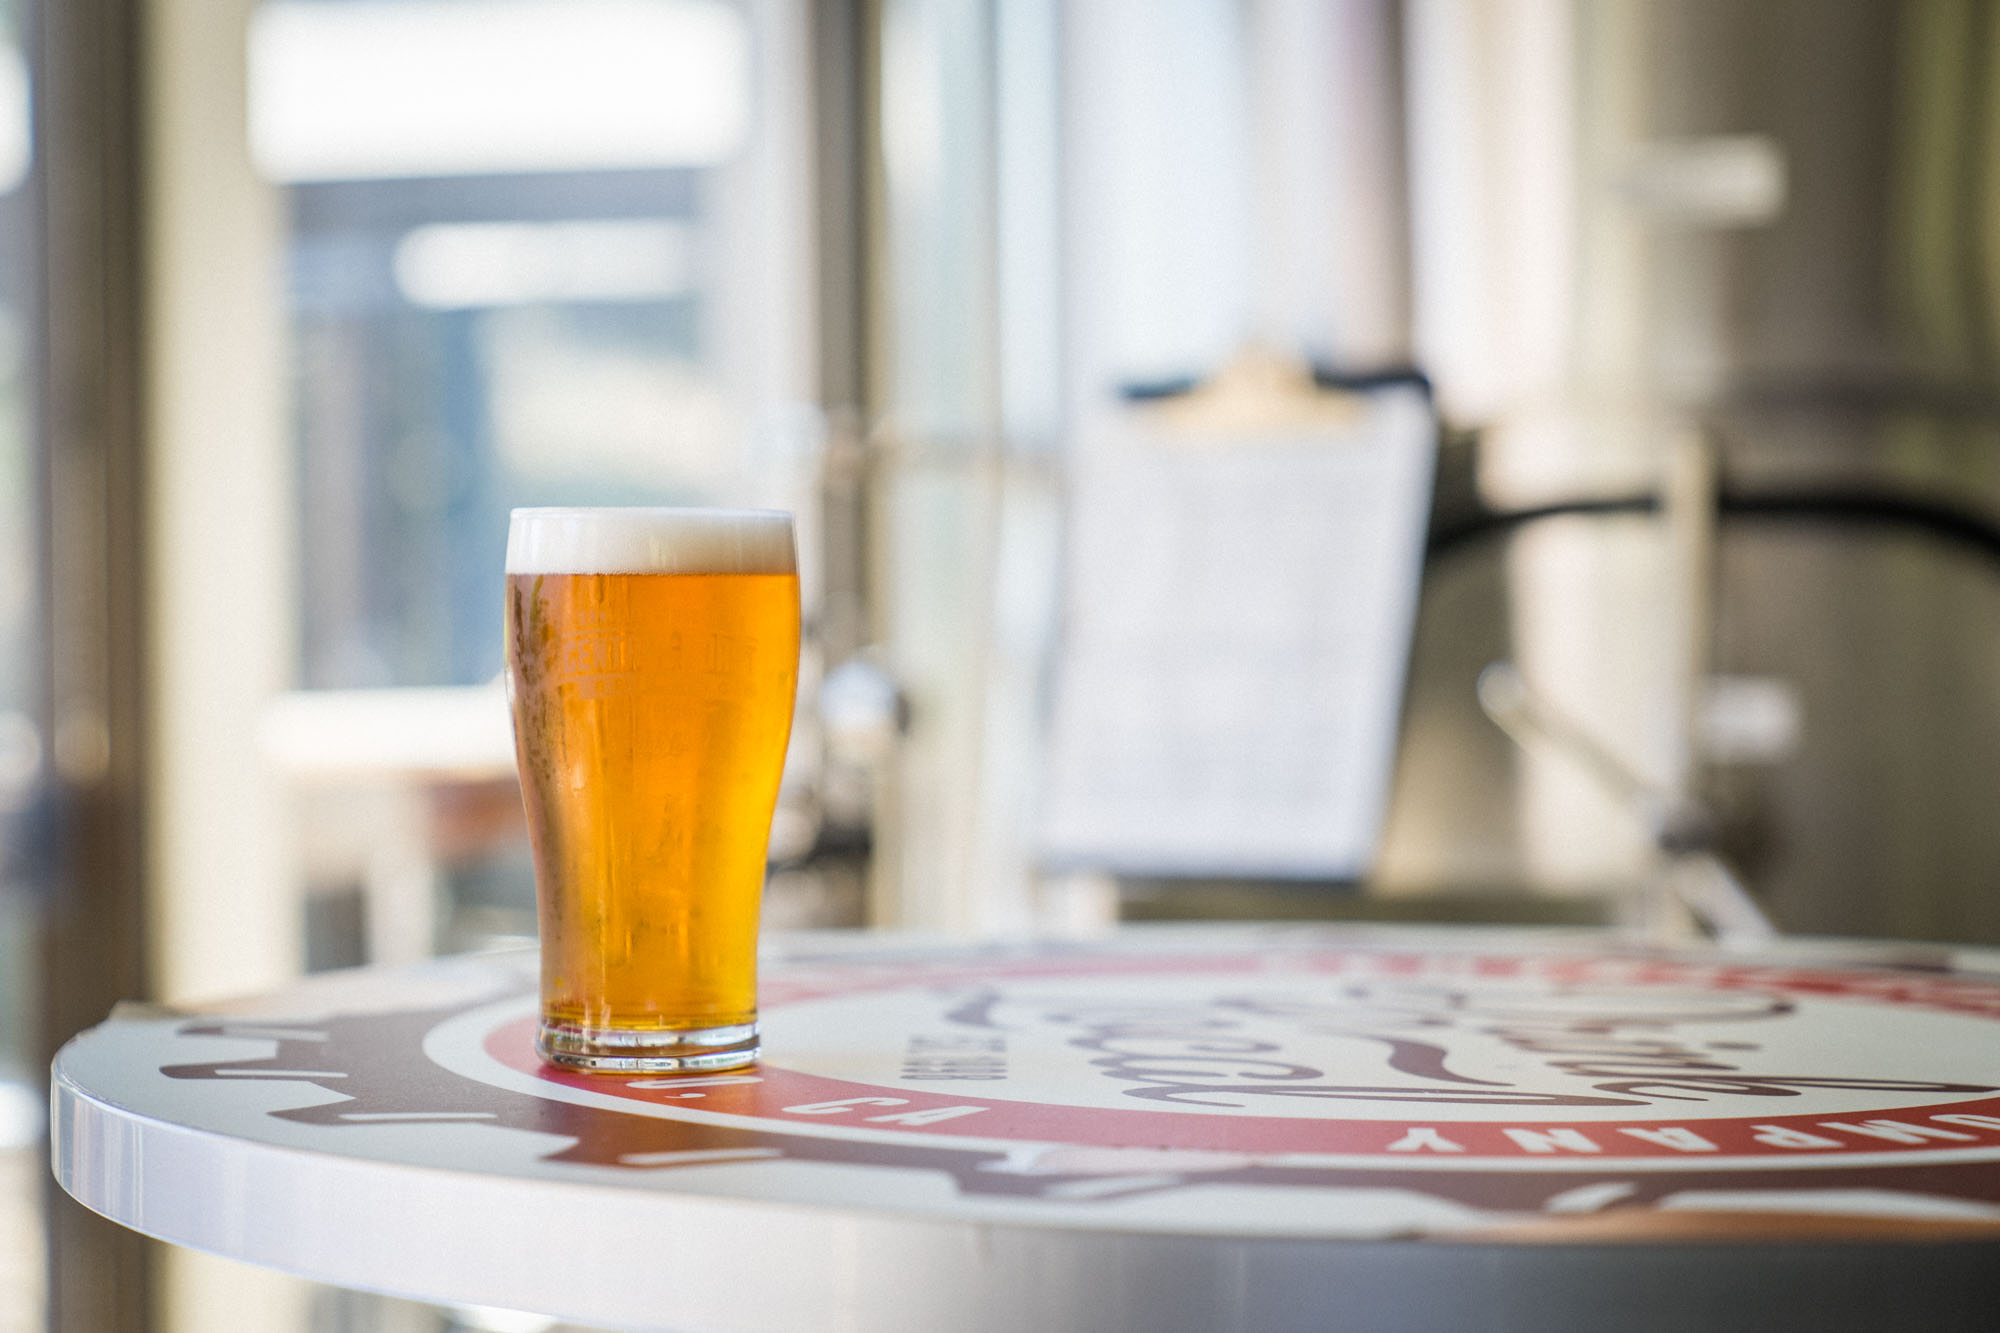 The Monterey Street Pale Ale beer sits on a table at Central Coast Brewing in San Luis Obispo for Dirt Road Travels